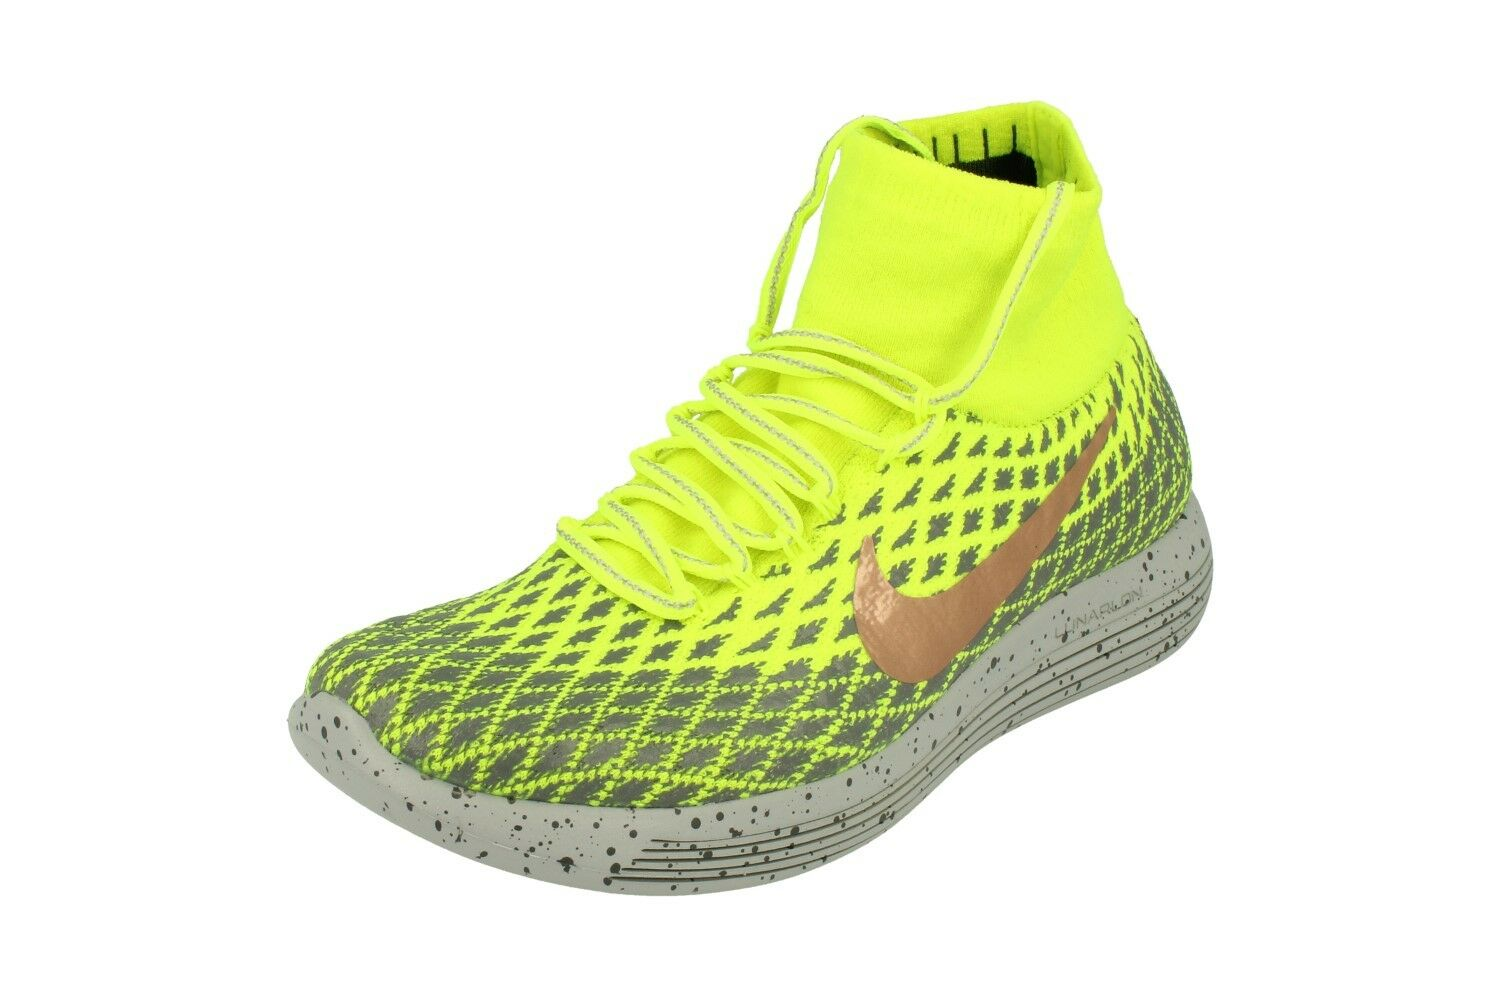 Nike Lunarepic Flyknit Shield Mens Running Trainers 849664 Sneakers Shoes Casual wild